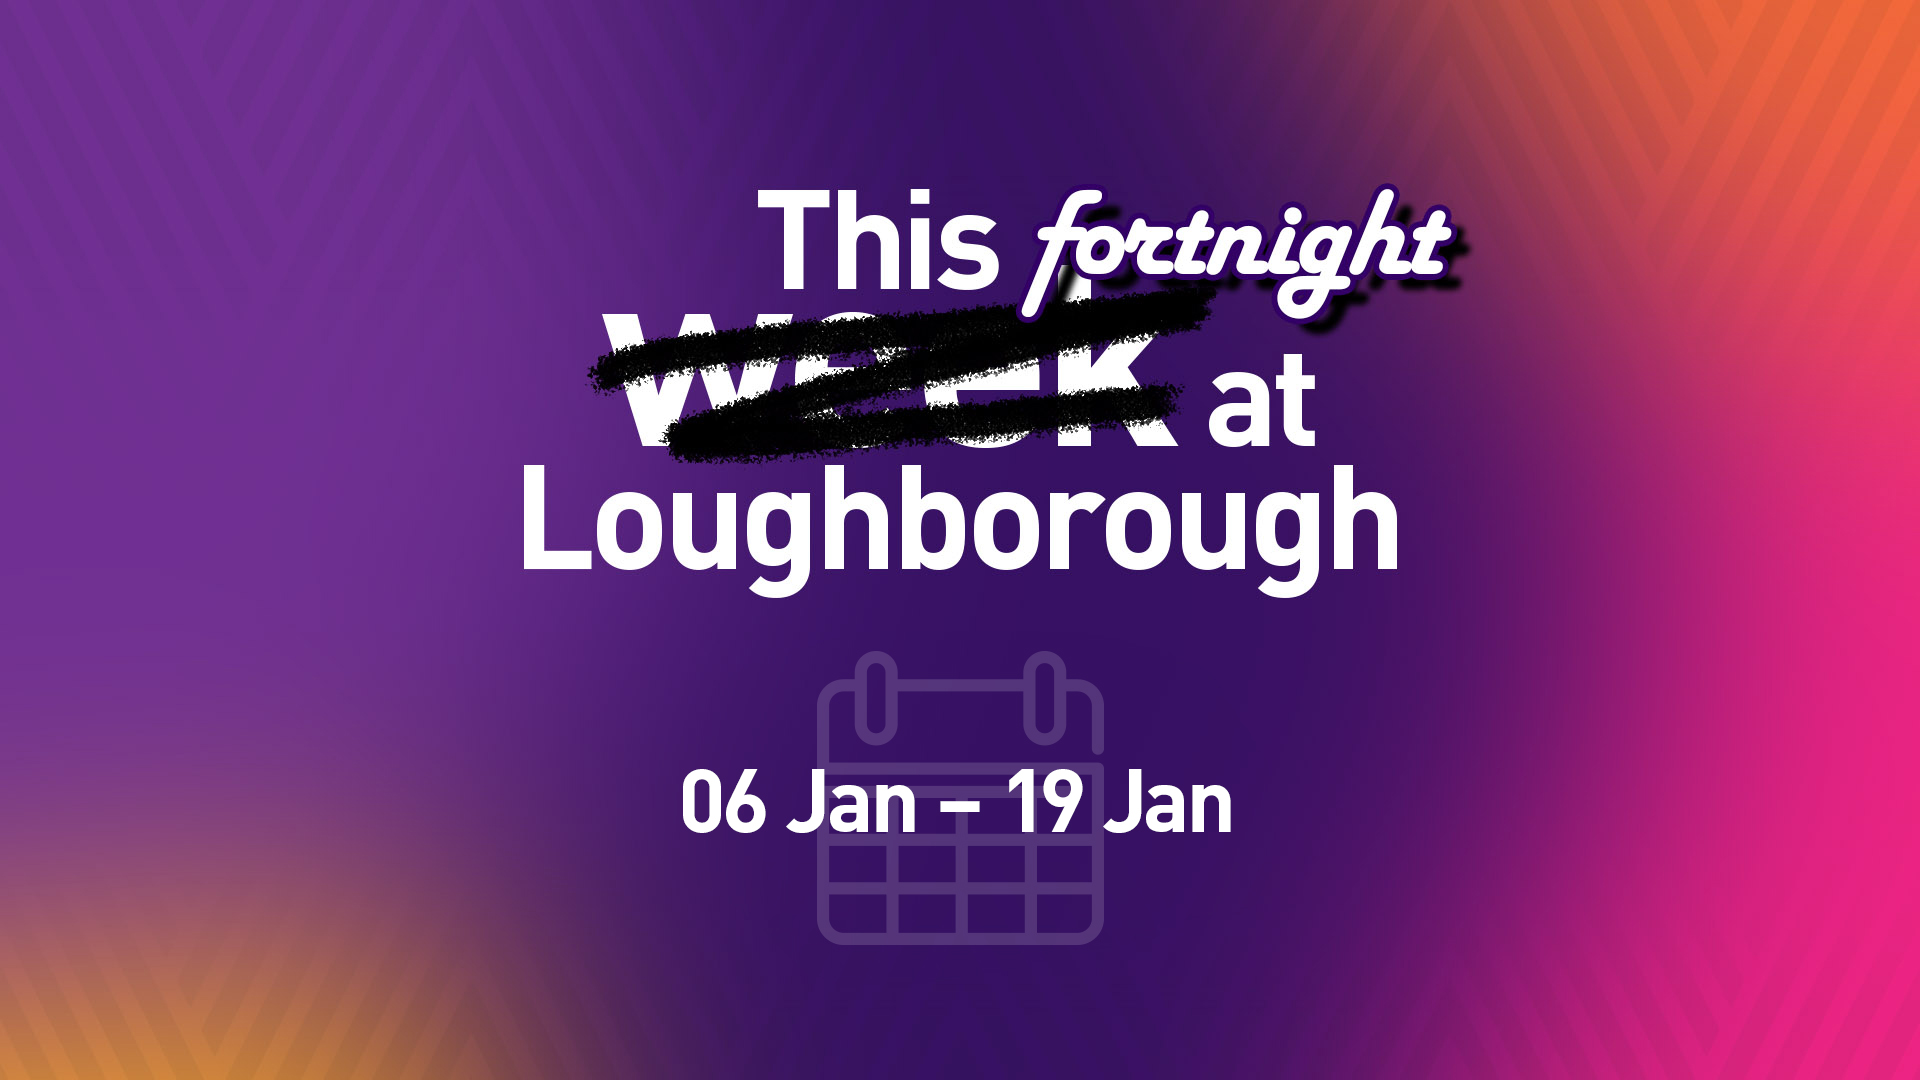 This Fortnight at Loughborough | 6th January 2020